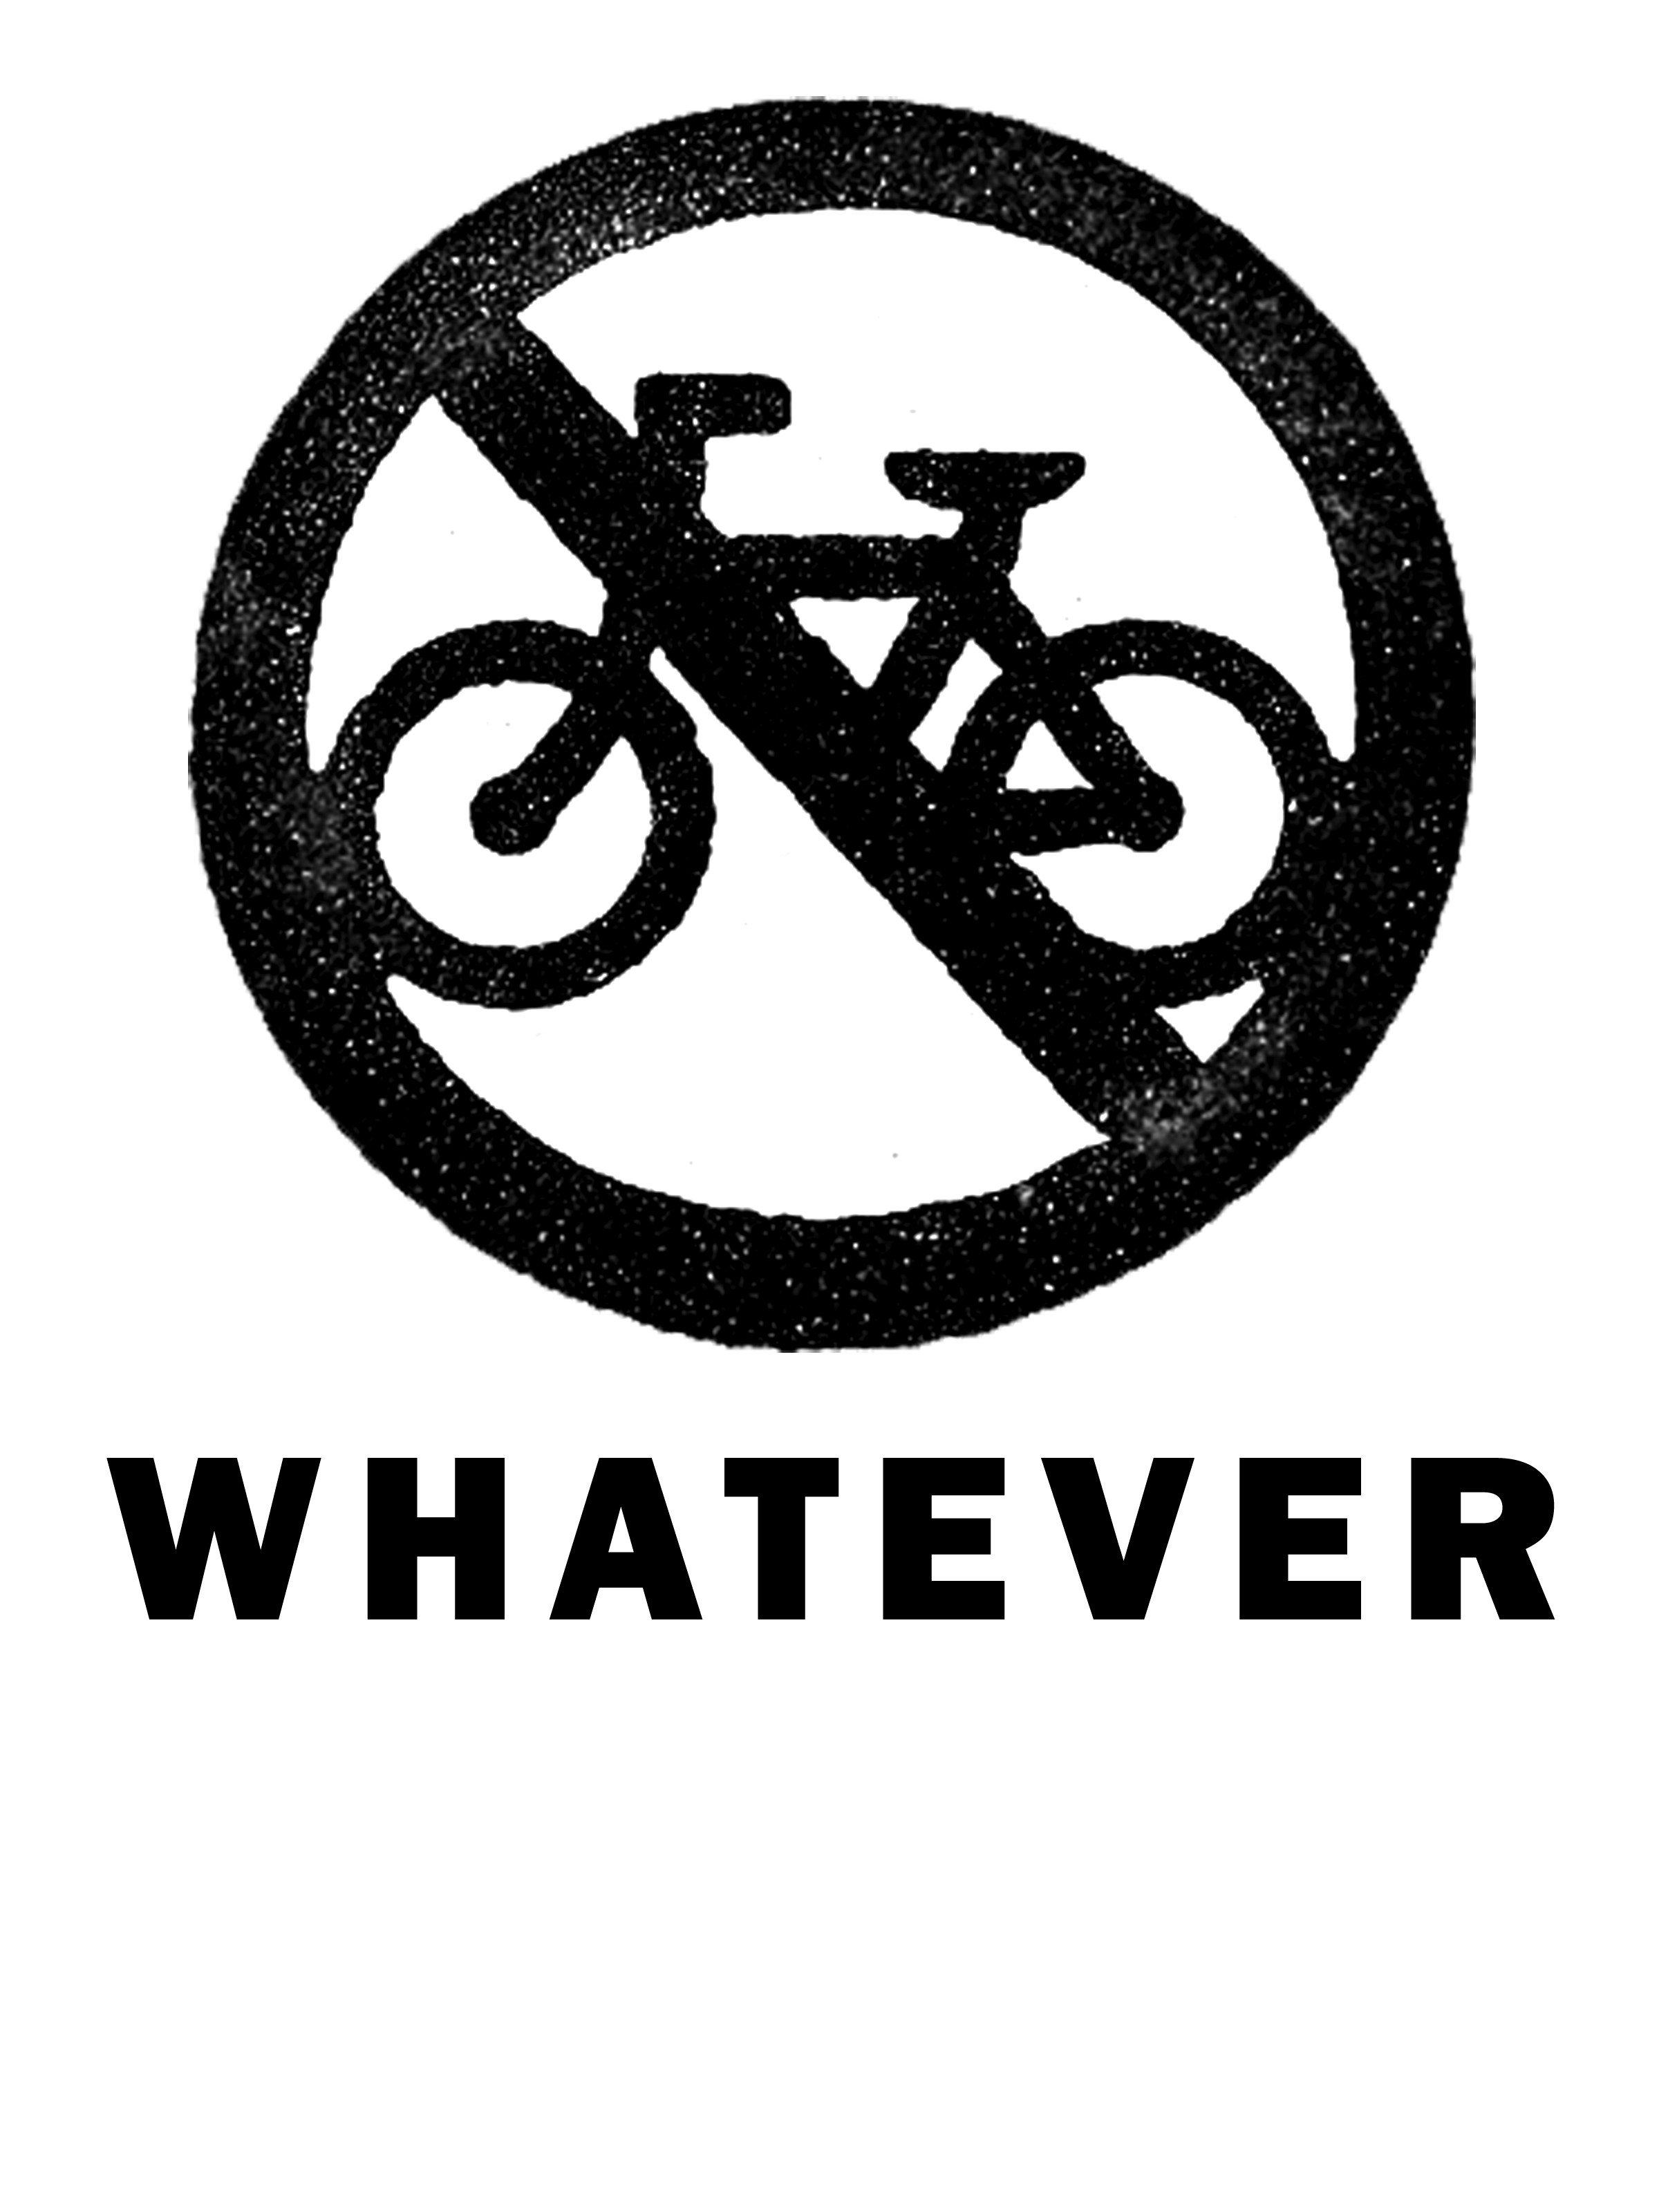 0007 – No Bicycles – Whatever